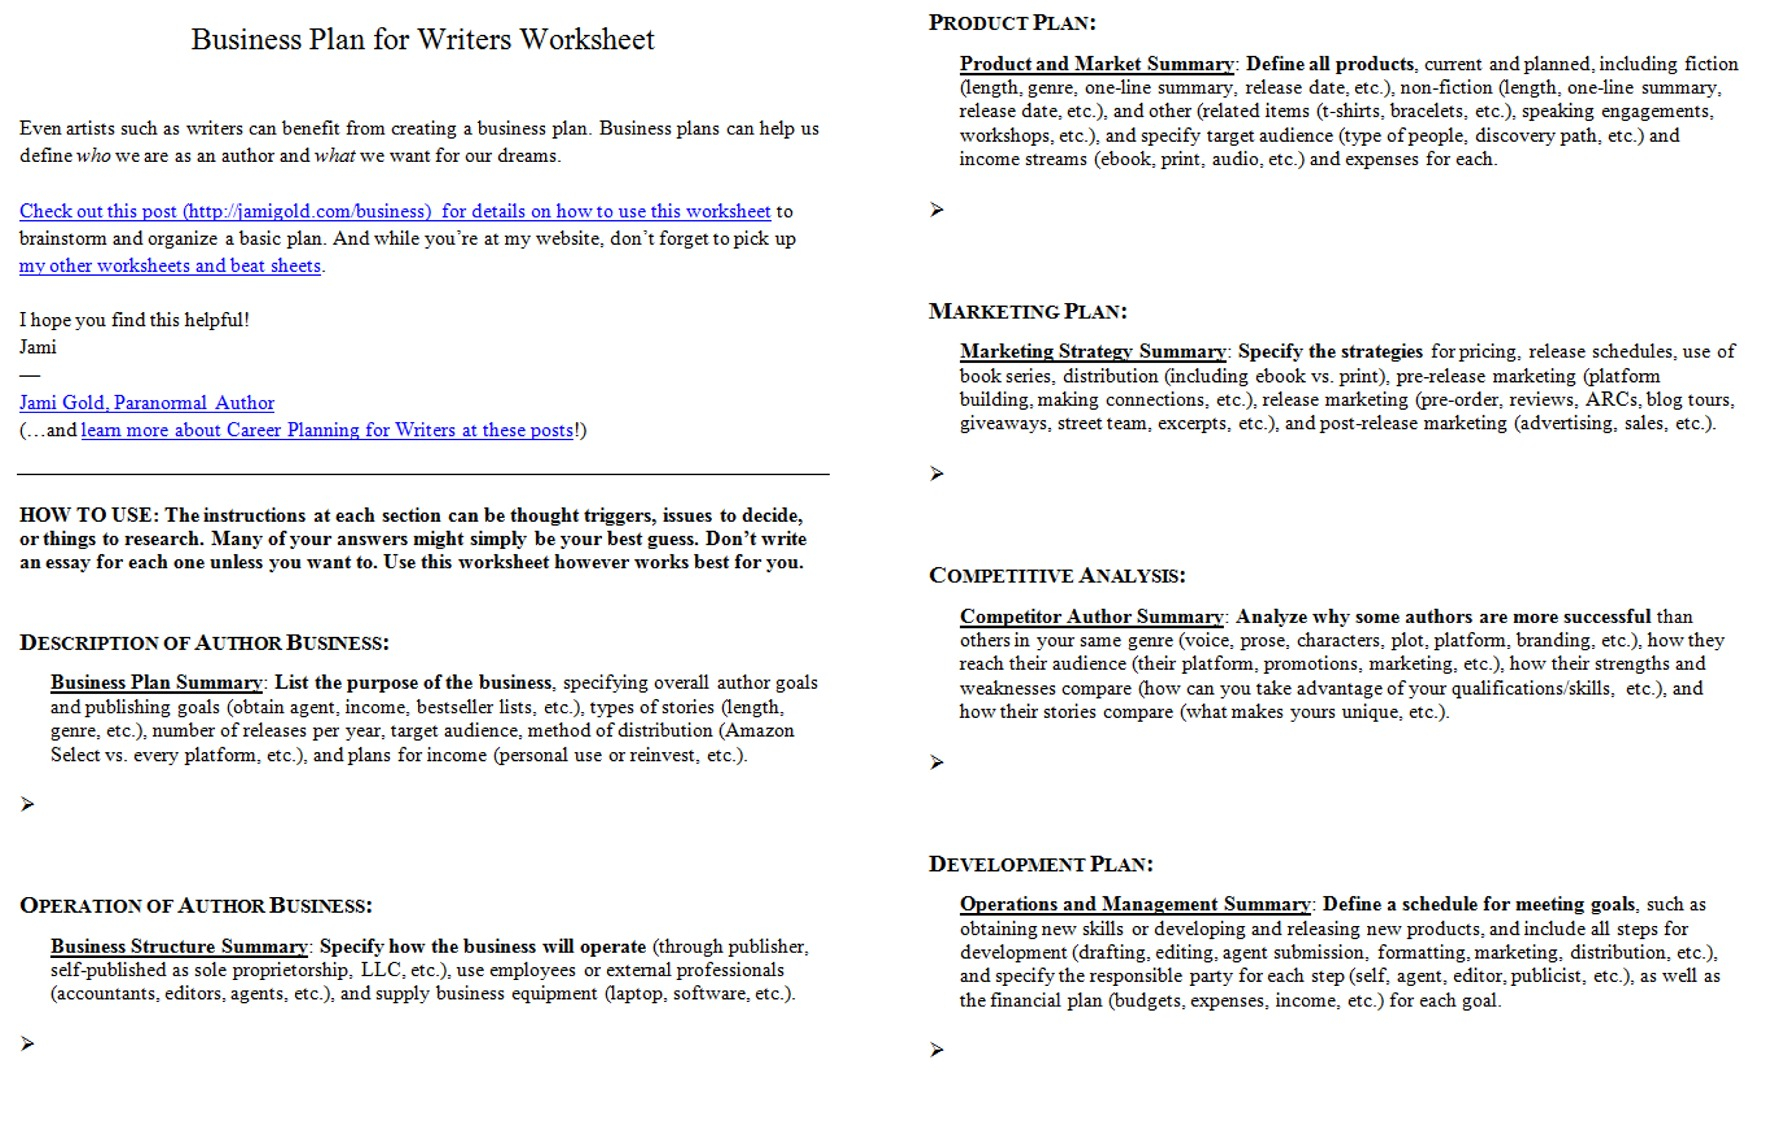 Proatmealus  Personable Worksheets For Writers  Jami Gold Paranormal Author With Fetching Screen Shot Of Both Pages Of The Business Plan For Writers Worksheet With Delectable Variables Worksheet Science Also Adding Fractions With Like Denominators Worksheets Rd Grade In Addition Form  Worksheet And Personal Allowance Worksheet Help As Well As  Point Perspective Worksheet Additionally Solubility Worksheets From Jamigoldcom With Proatmealus  Fetching Worksheets For Writers  Jami Gold Paranormal Author With Delectable Screen Shot Of Both Pages Of The Business Plan For Writers Worksheet And Personable Variables Worksheet Science Also Adding Fractions With Like Denominators Worksheets Rd Grade In Addition Form  Worksheet From Jamigoldcom